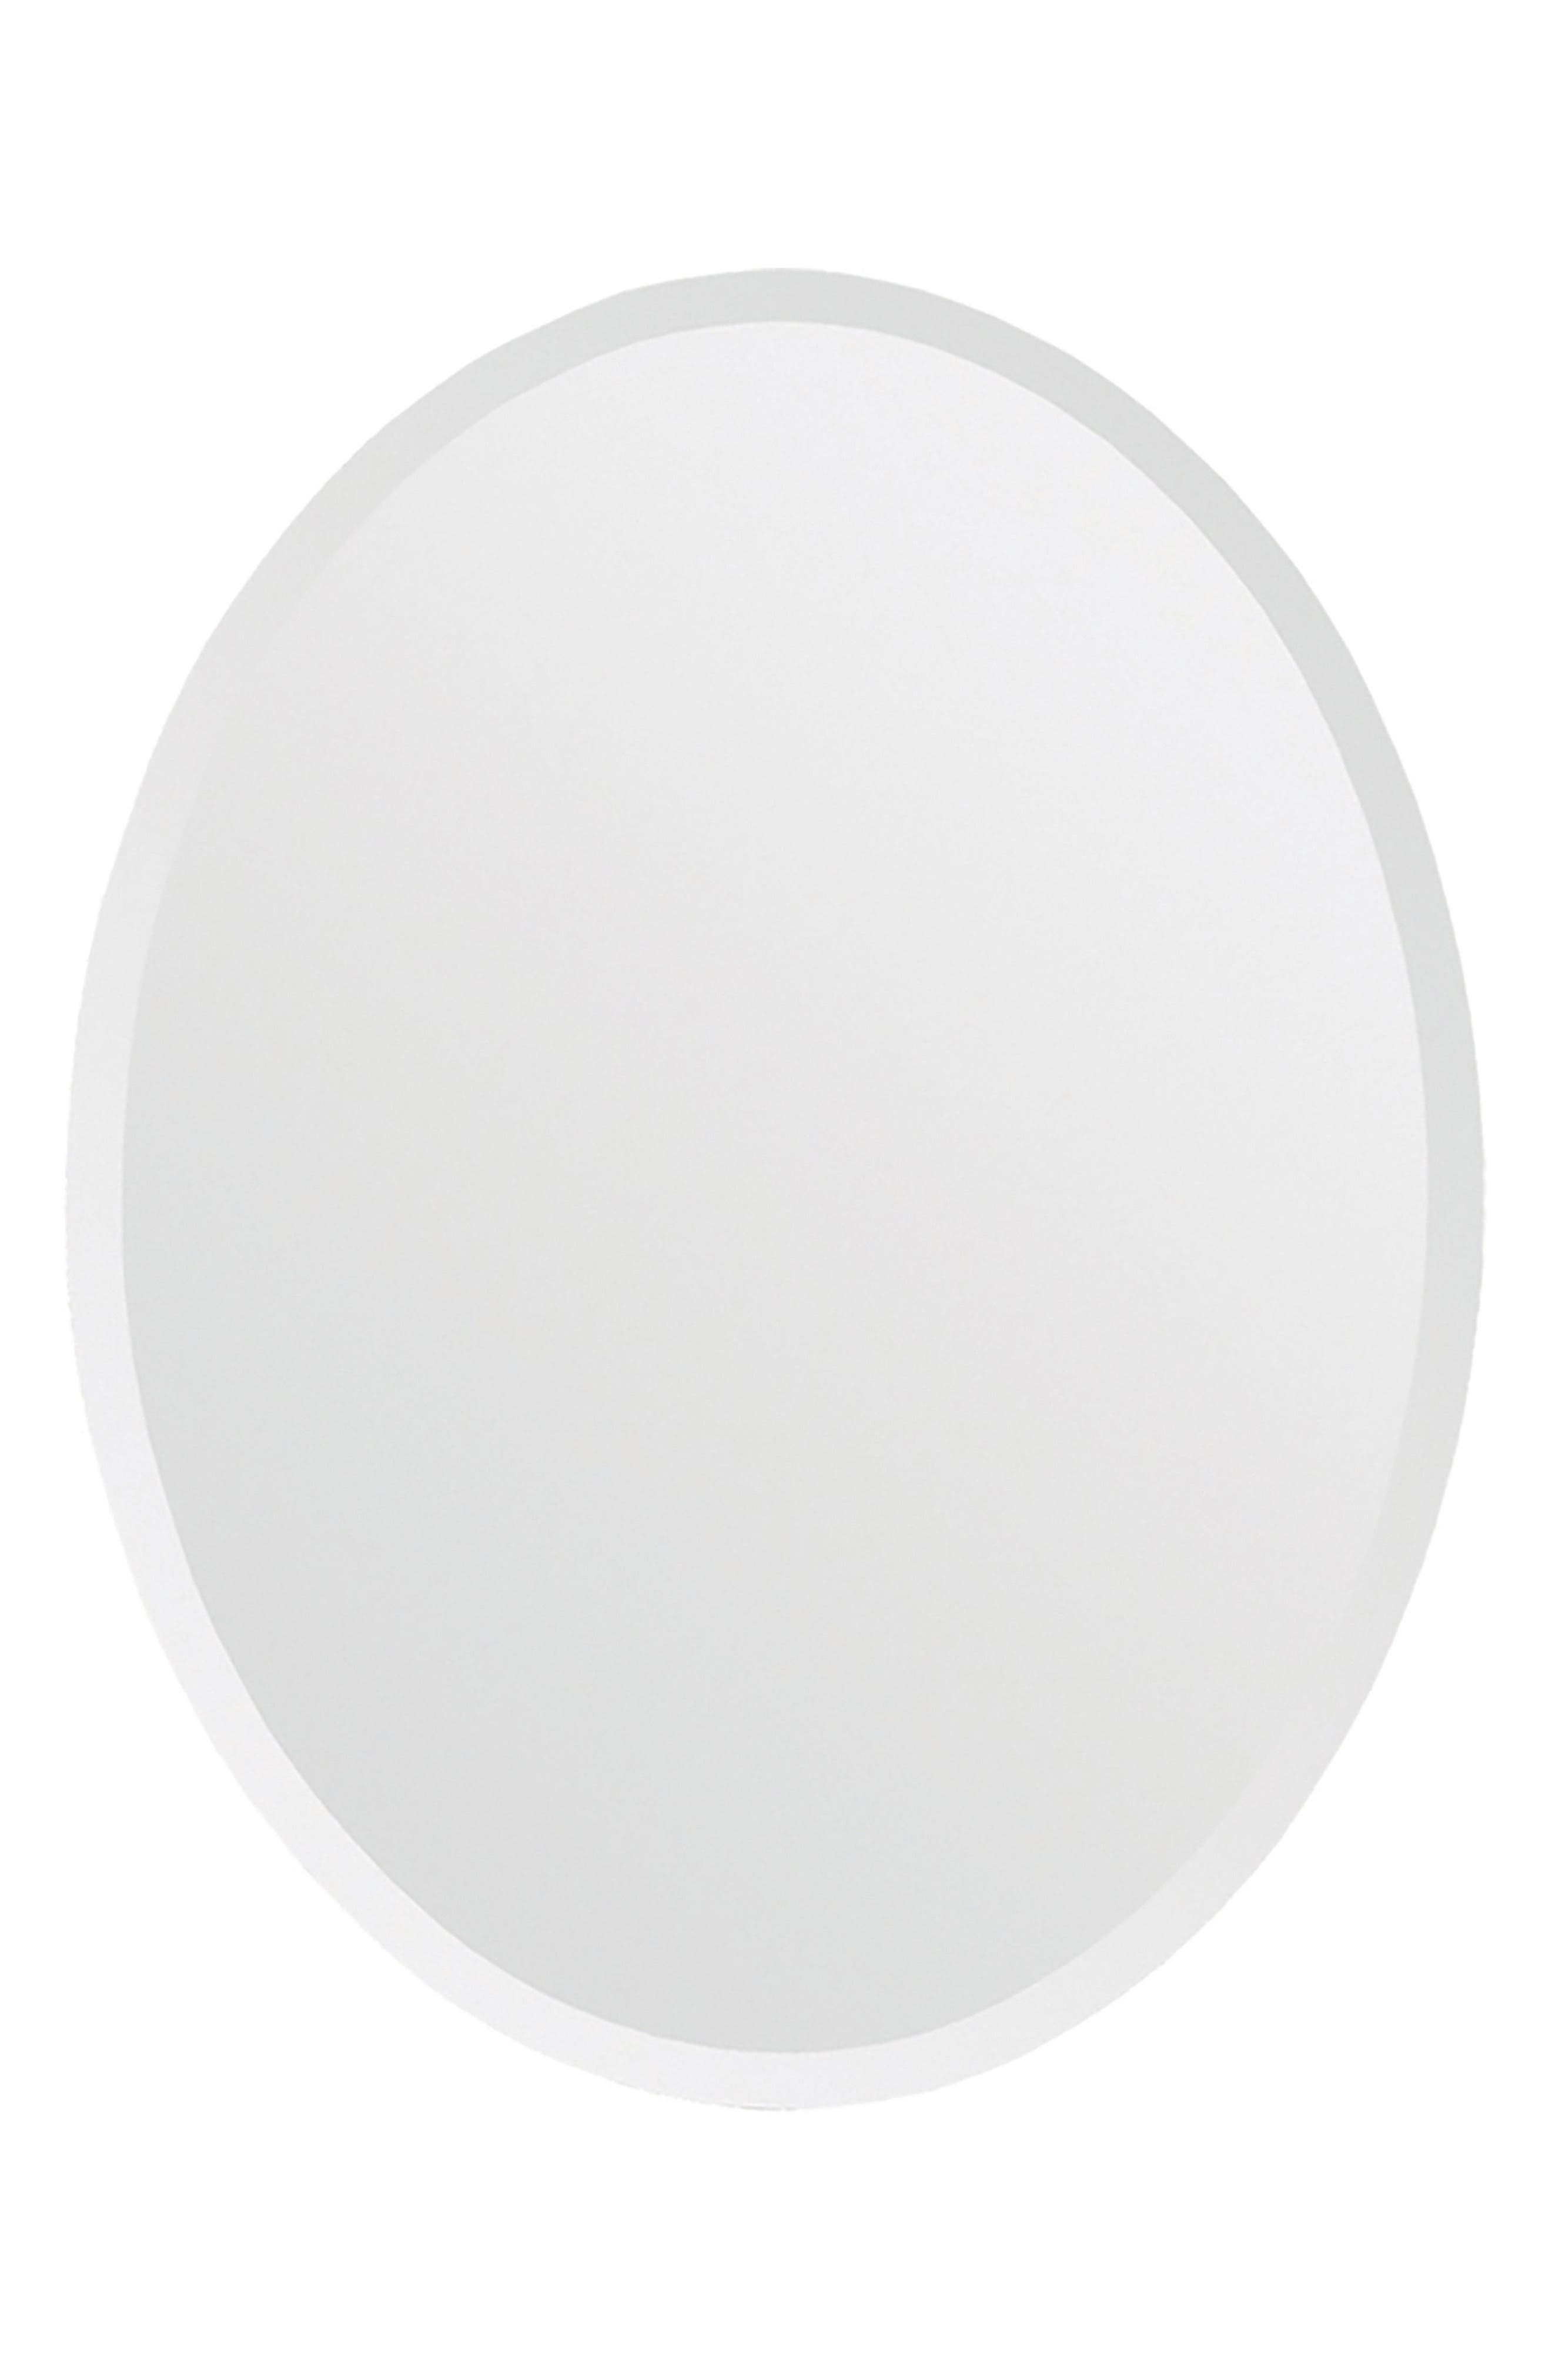 Alternate Image 1 Selected - Renwil Zsa Zsa Oval Mirror